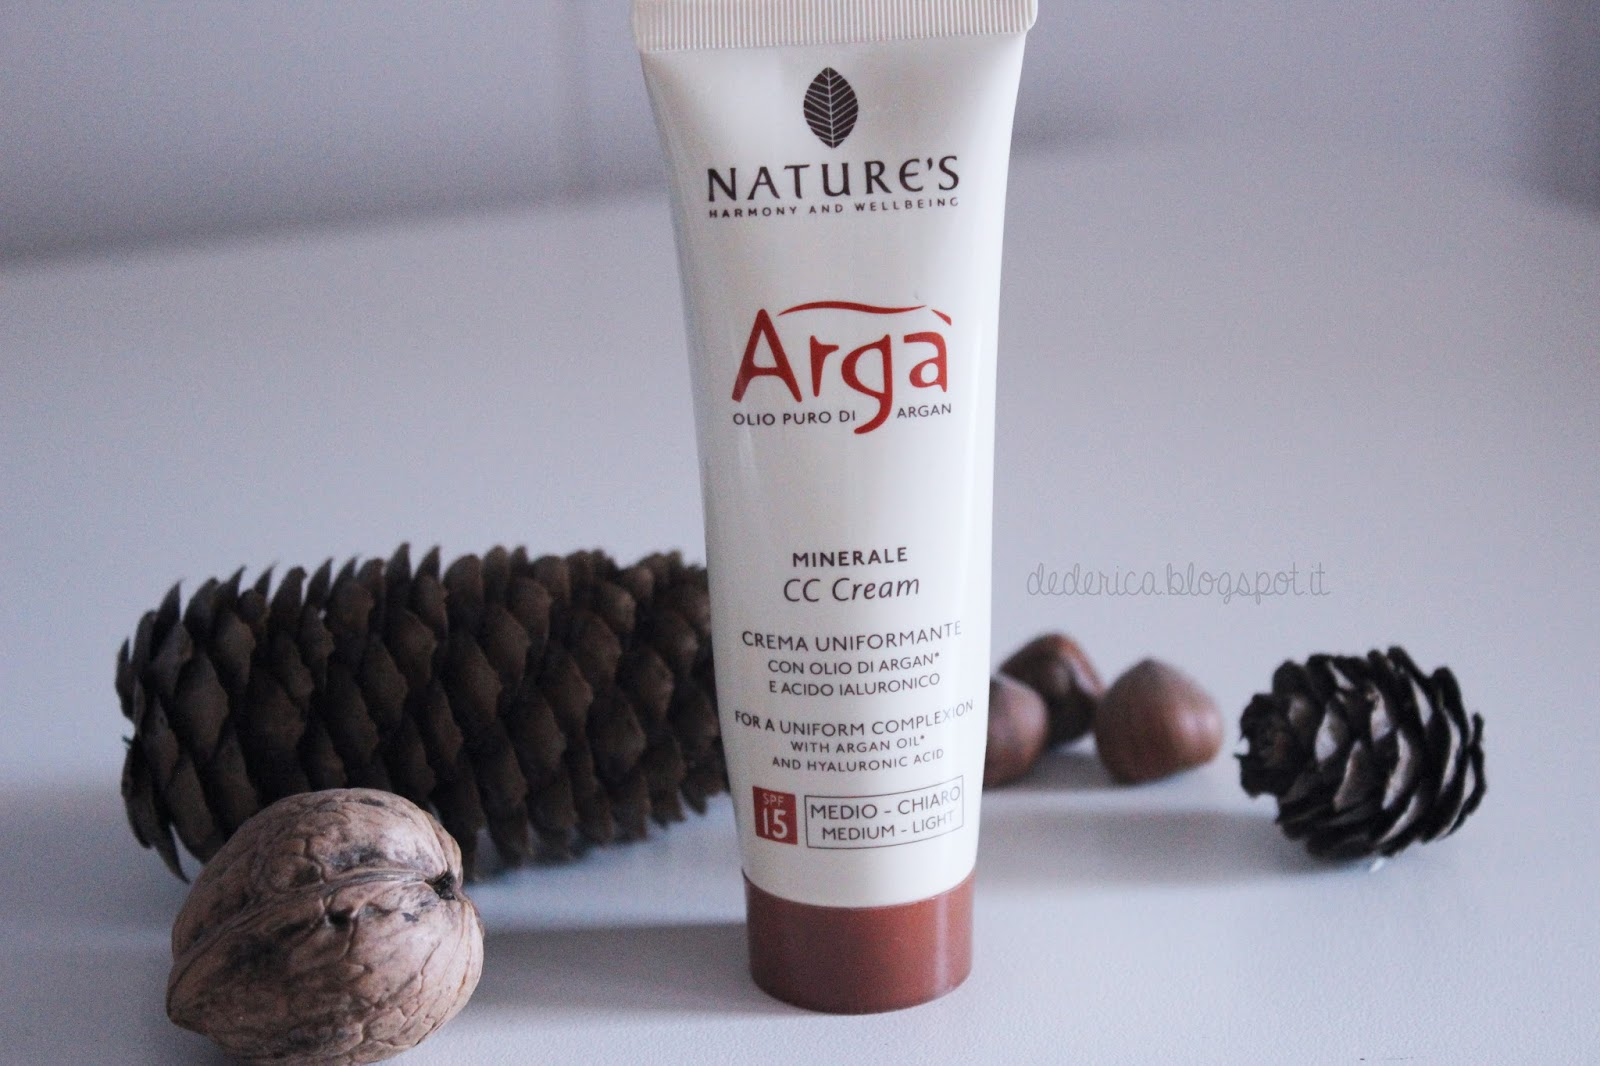 Nature's - Argà Argan Olio Puro di Argan CC Cream in Medium-Light